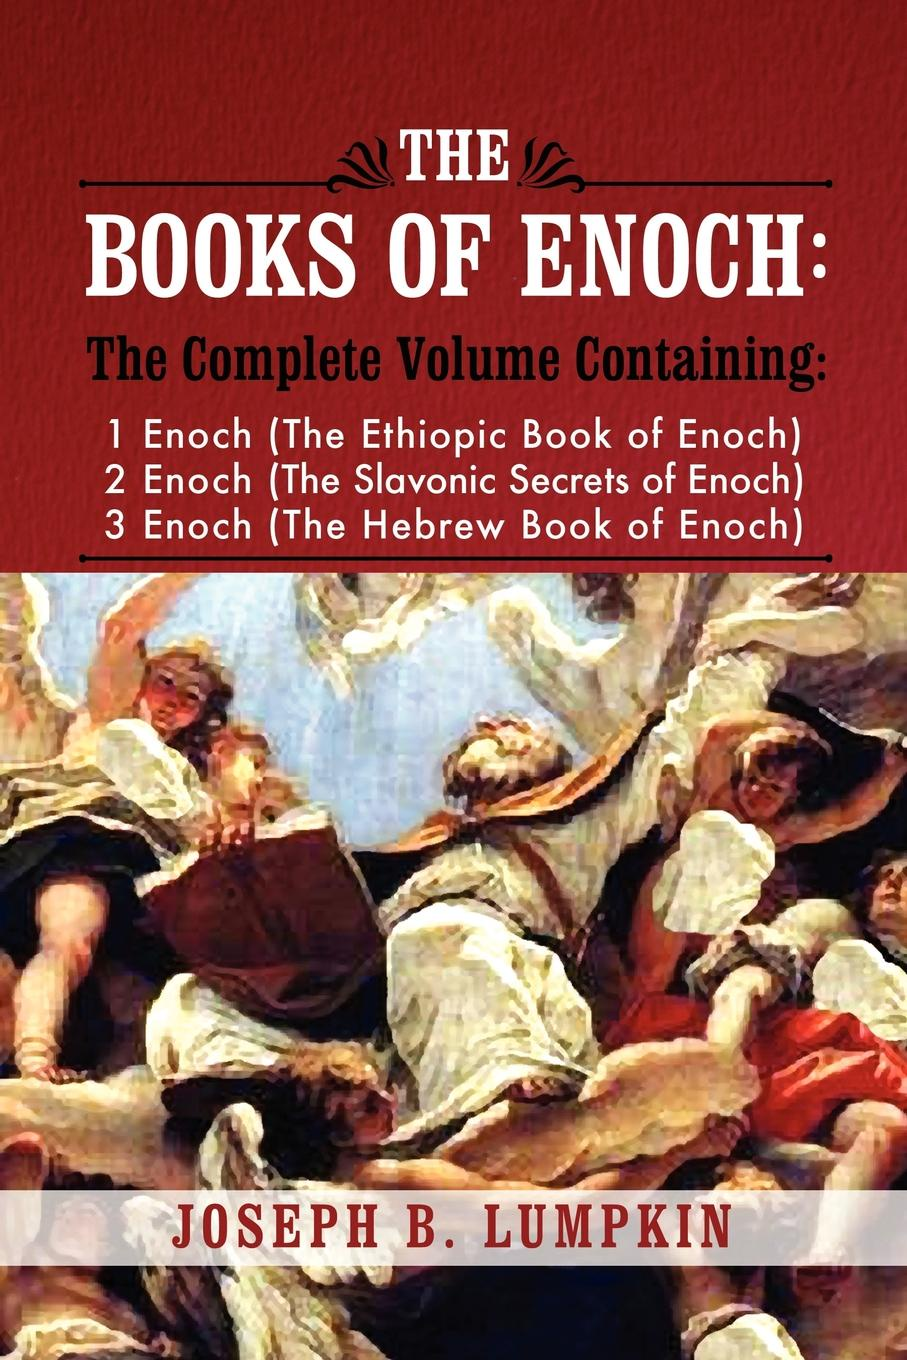 Joseph B. Lumpkin The Books of Enoch. A Complete Volume Containing 1 Enoch (the Ethiopic Book of Enoch), 2 Enoch (the Slavonic Secrets of Enoch), and 3 Enoc al capp s complete shmoo volume 1 the comic books